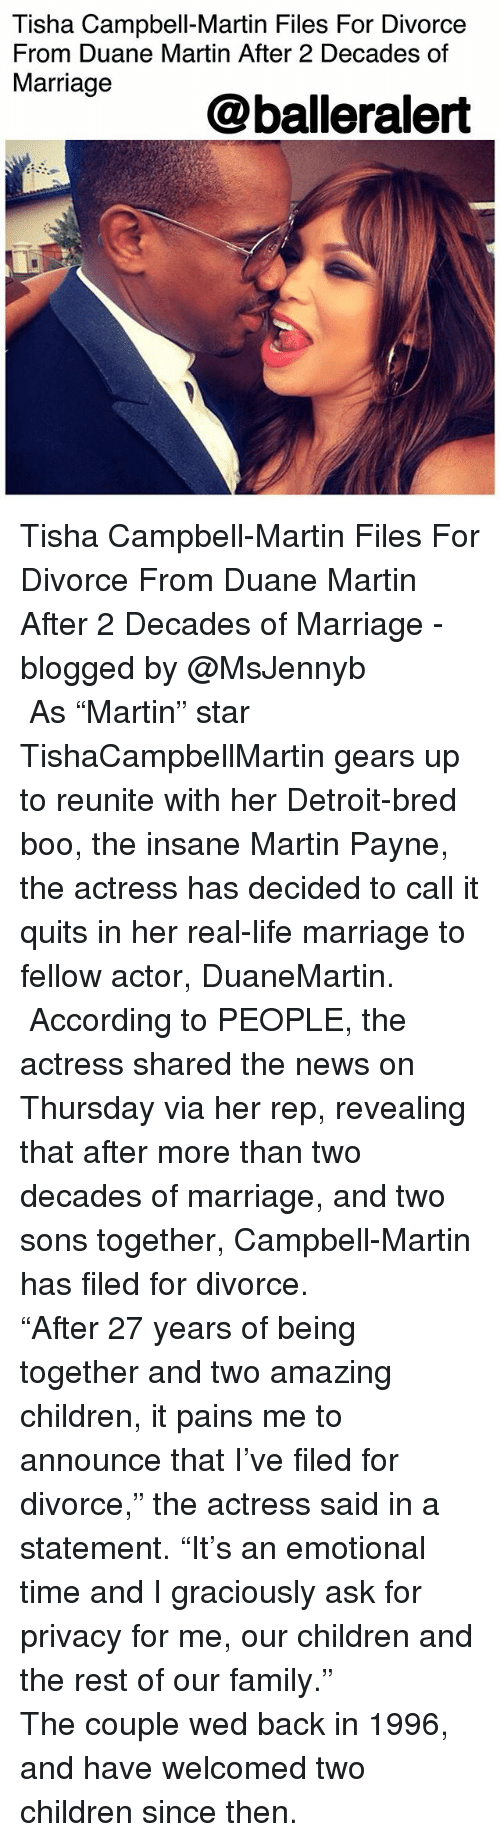 """Boo, Children, and Detroit: Tisha Campbell-Martin Files For Divorce  From Duane Martin After 2 Decades of  Marriage  @balleralert Tisha Campbell-Martin Files For Divorce From Duane Martin After 2 Decades of Marriage - blogged by @MsJennyb ⠀⠀⠀⠀⠀⠀⠀ ⠀⠀⠀⠀⠀⠀⠀ As """"Martin"""" star TishaCampbellMartin gears up to reunite with her Detroit-bred boo, the insane Martin Payne, the actress has decided to call it quits in her real-life marriage to fellow actor, DuaneMartin. ⠀⠀⠀⠀⠀⠀⠀ ⠀⠀⠀⠀⠀⠀⠀ According to PEOPLE, the actress shared the news on Thursday via her rep, revealing that after more than two decades of marriage, and two sons together, Campbell-Martin has filed for divorce. ⠀⠀⠀⠀⠀⠀⠀ ⠀⠀⠀⠀⠀⠀⠀ """"After 27 years of being together and two amazing children, it pains me to announce that I've filed for divorce,"""" the actress said in a statement. """"It's an emotional time and I graciously ask for privacy for me, our children and the rest of our family."""" ⠀⠀⠀⠀⠀⠀⠀ ⠀⠀⠀⠀⠀⠀⠀ The couple wed back in 1996, and have welcomed two children since then."""